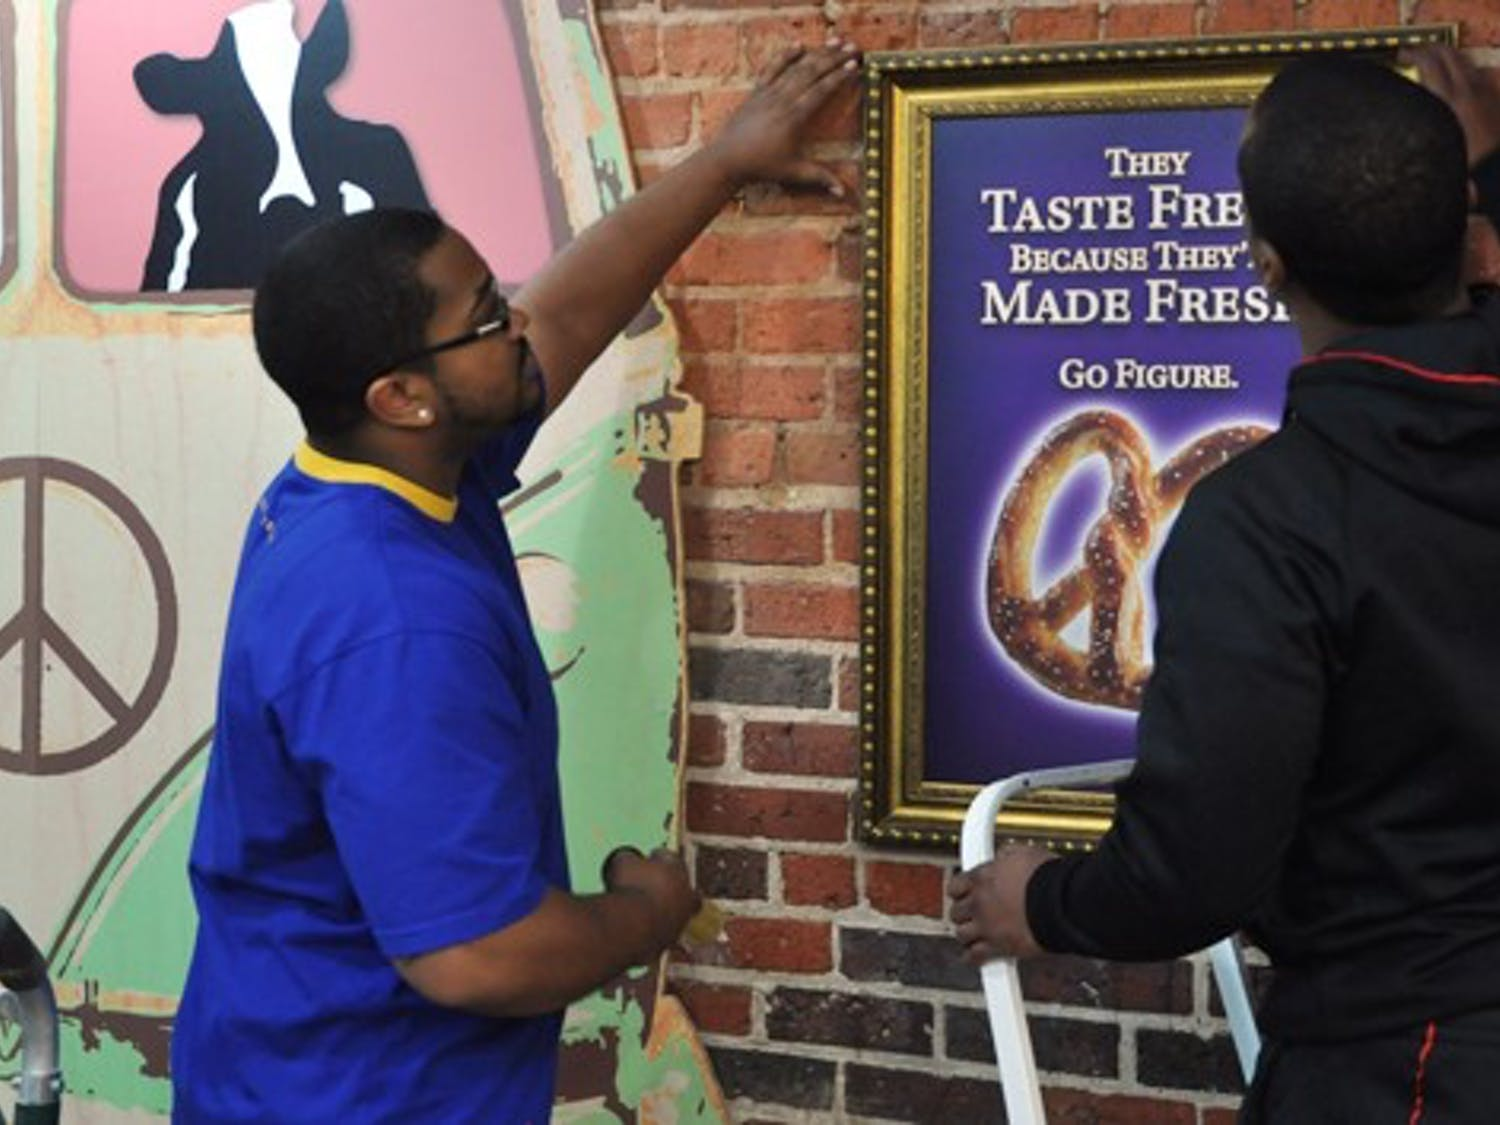 AUIYB - Owners Antonio McBroom (left) and Eric Taylor prepare for Ben and Jerry's Grand Re-Opening as well as Auntie Anne's addition Wednesday, January 11.